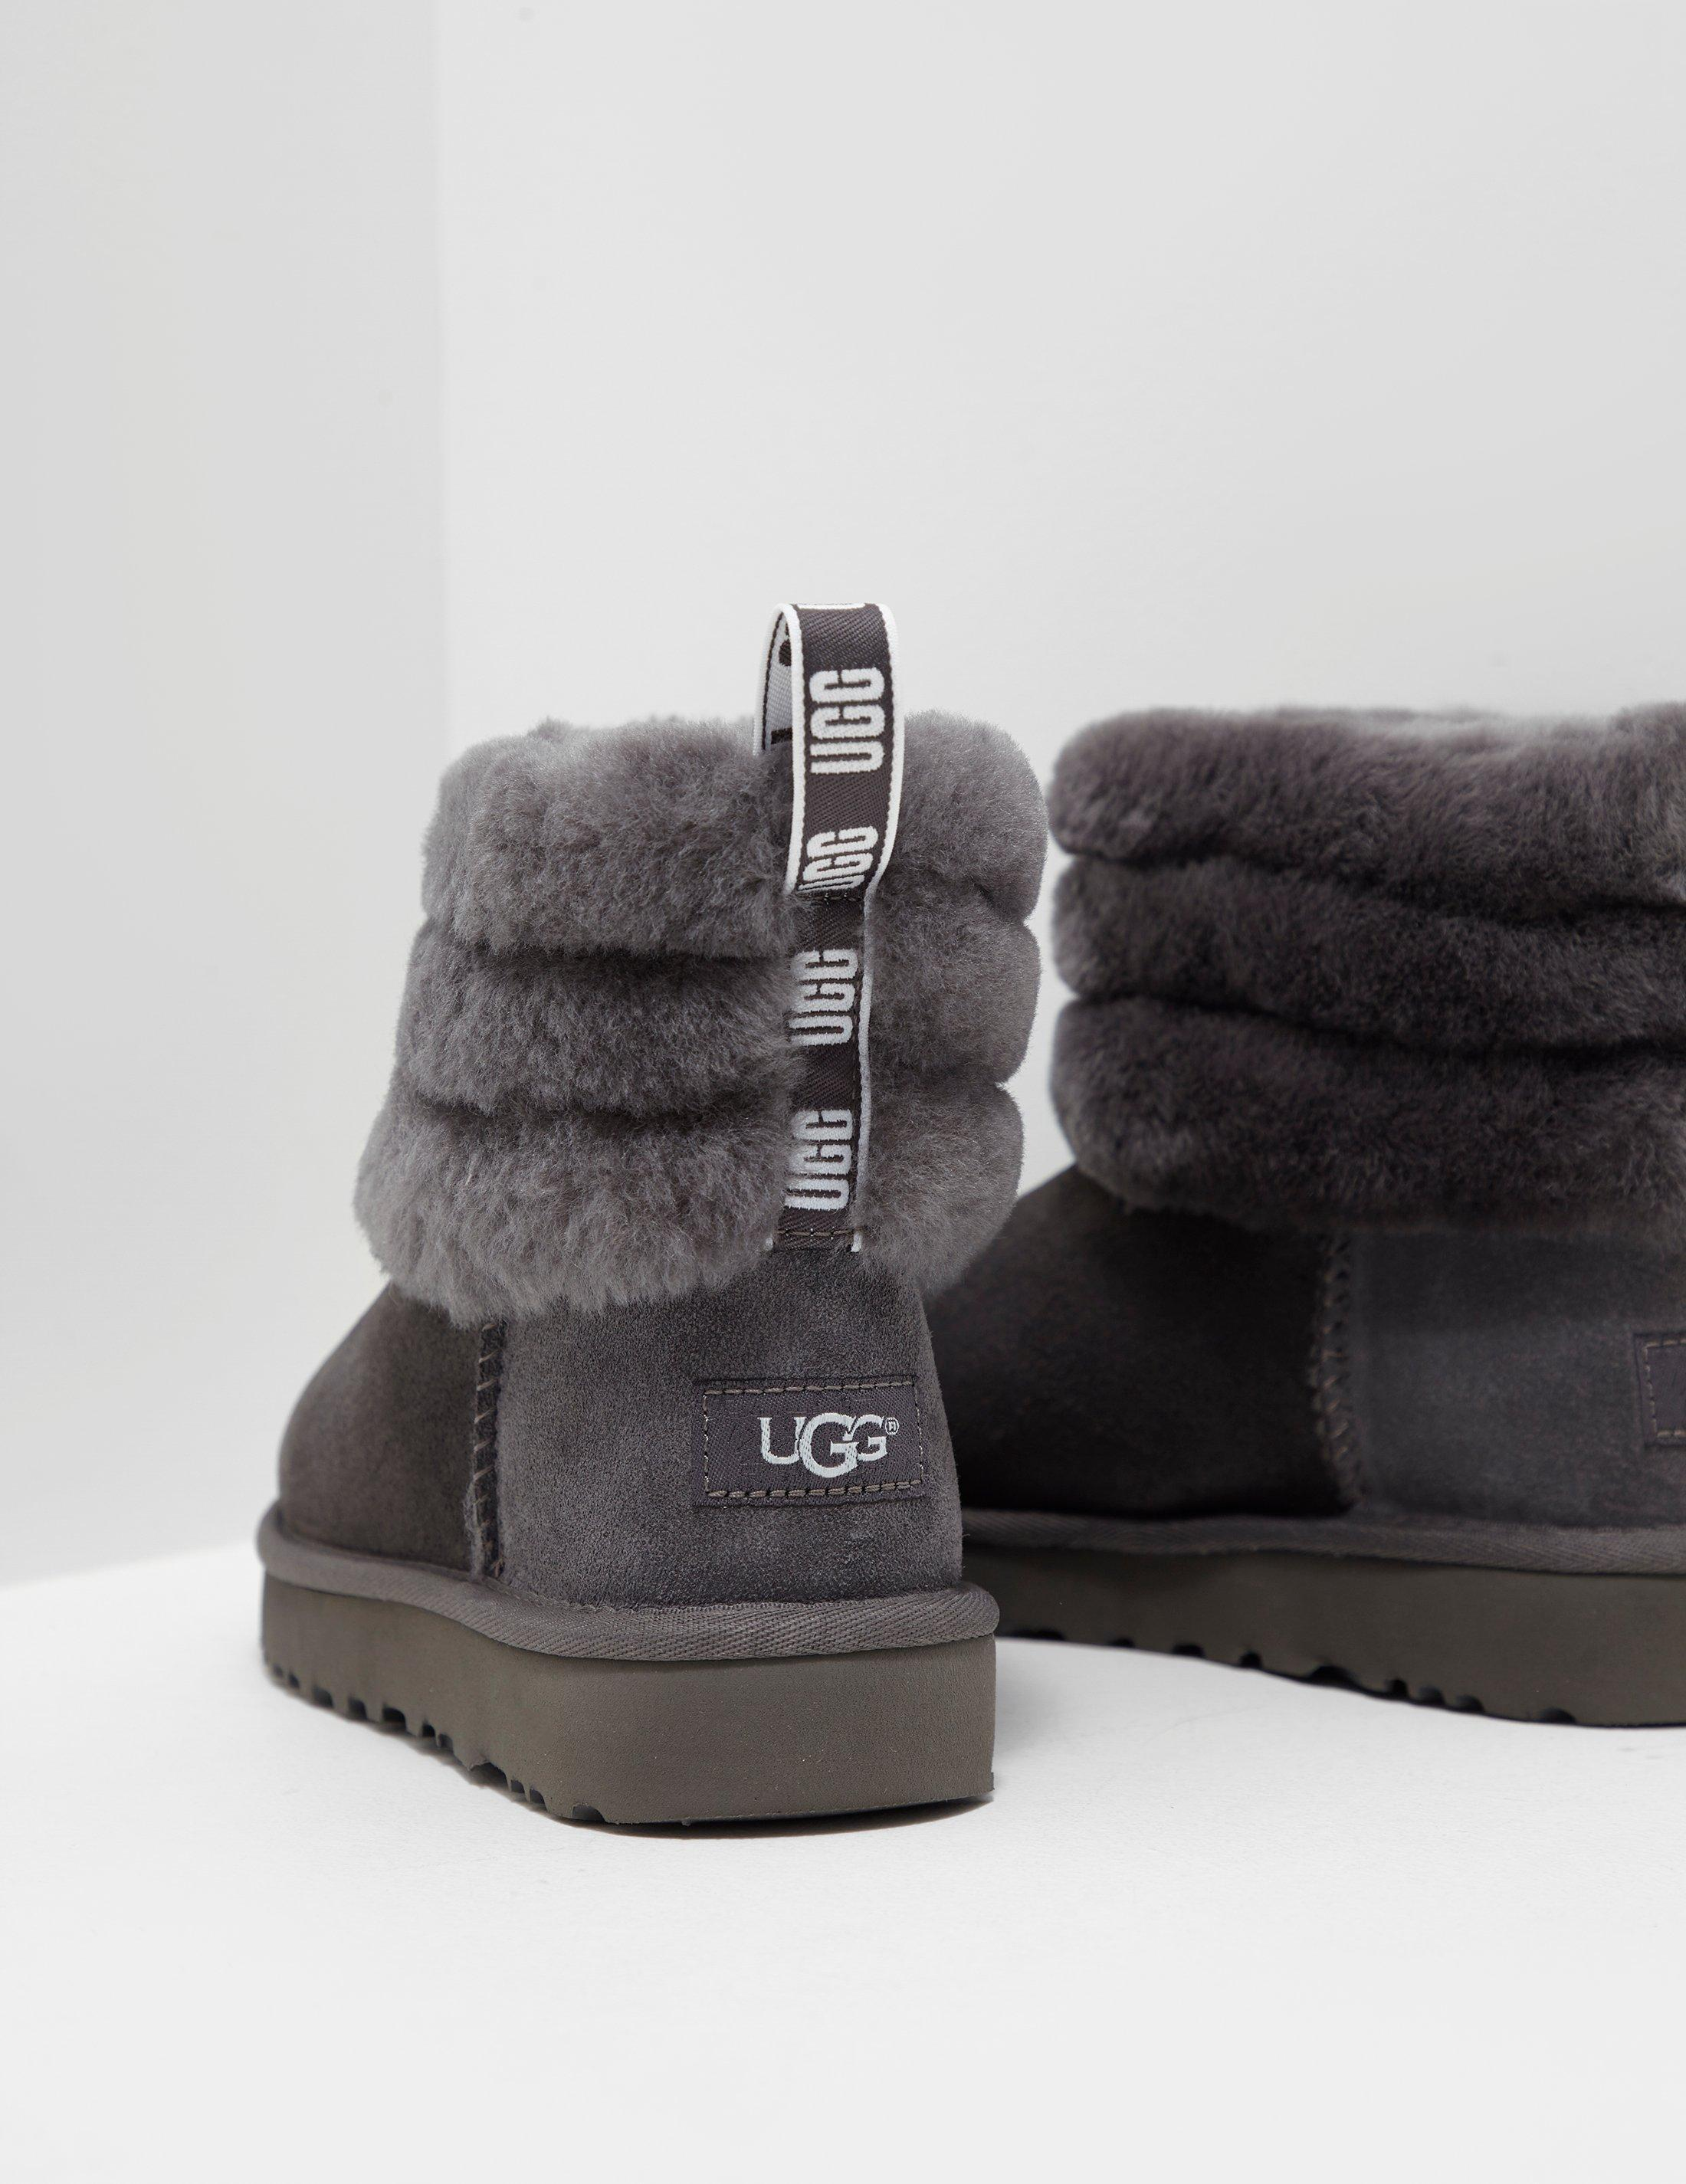 Lyst - UGG Womens Fluff Mini Quilted Logo Boots Women s Grey in Gray 0a9fded16